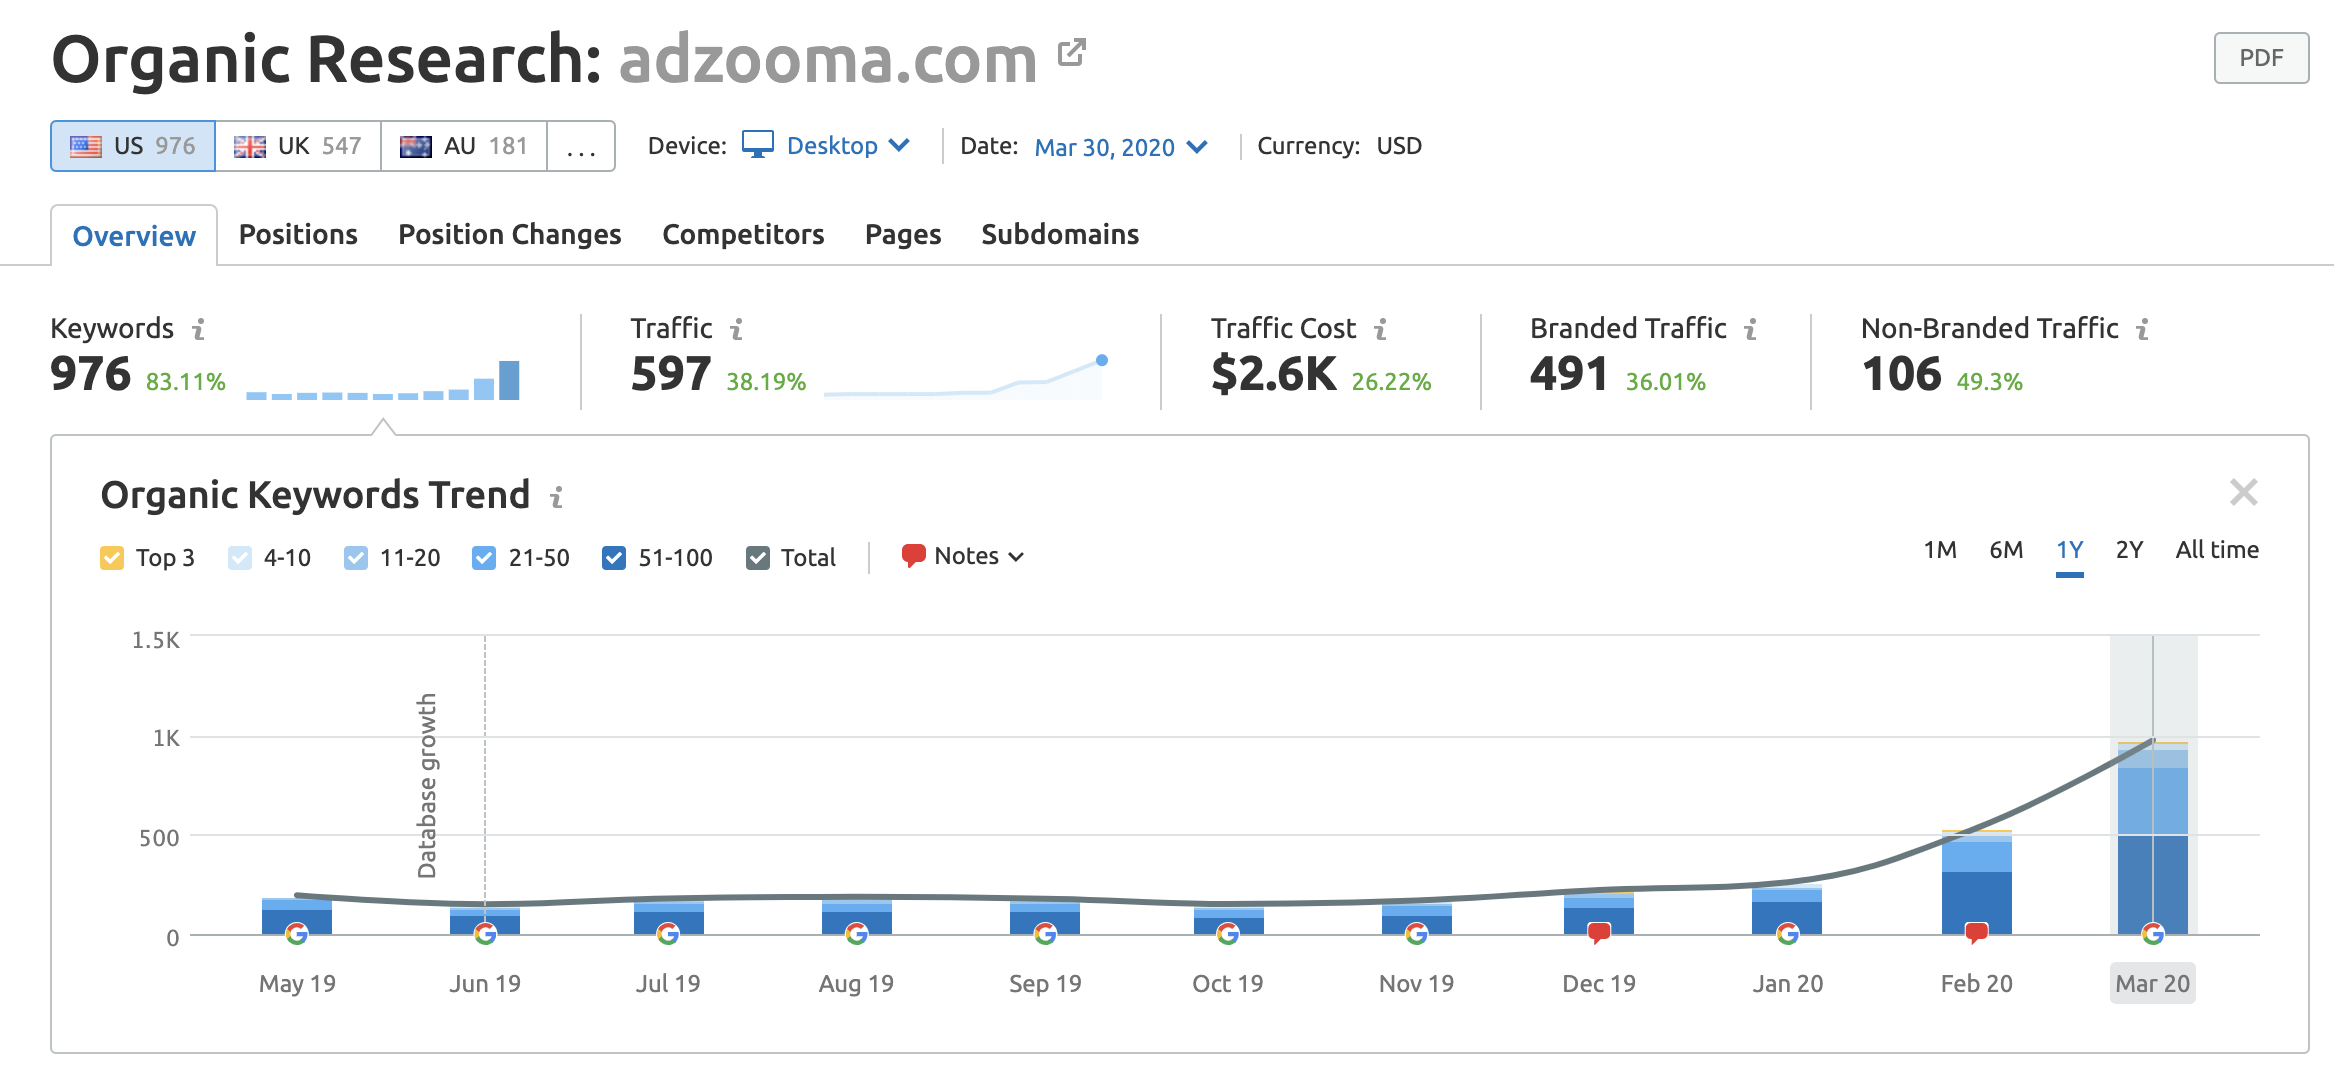 Organic Keywords Trend for adzooma, improved SEO in the last year (US)